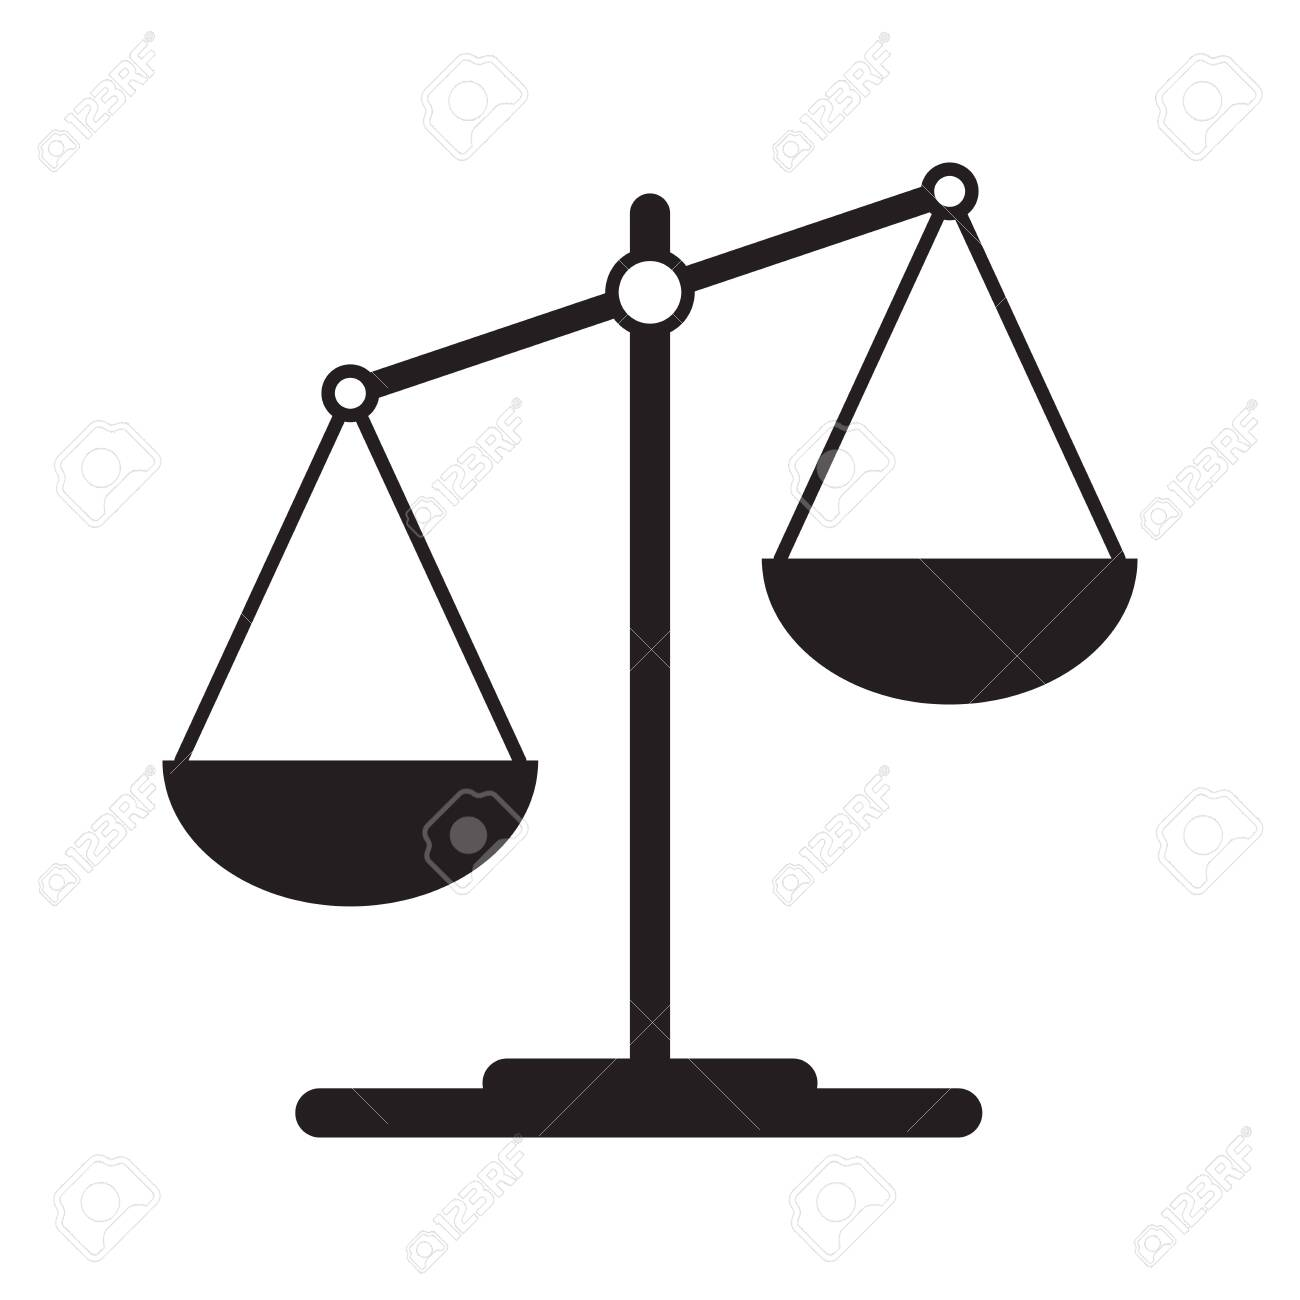 Scales icon in flat style. Libra symbol, balance sign. Vector design element for you project - 141125055